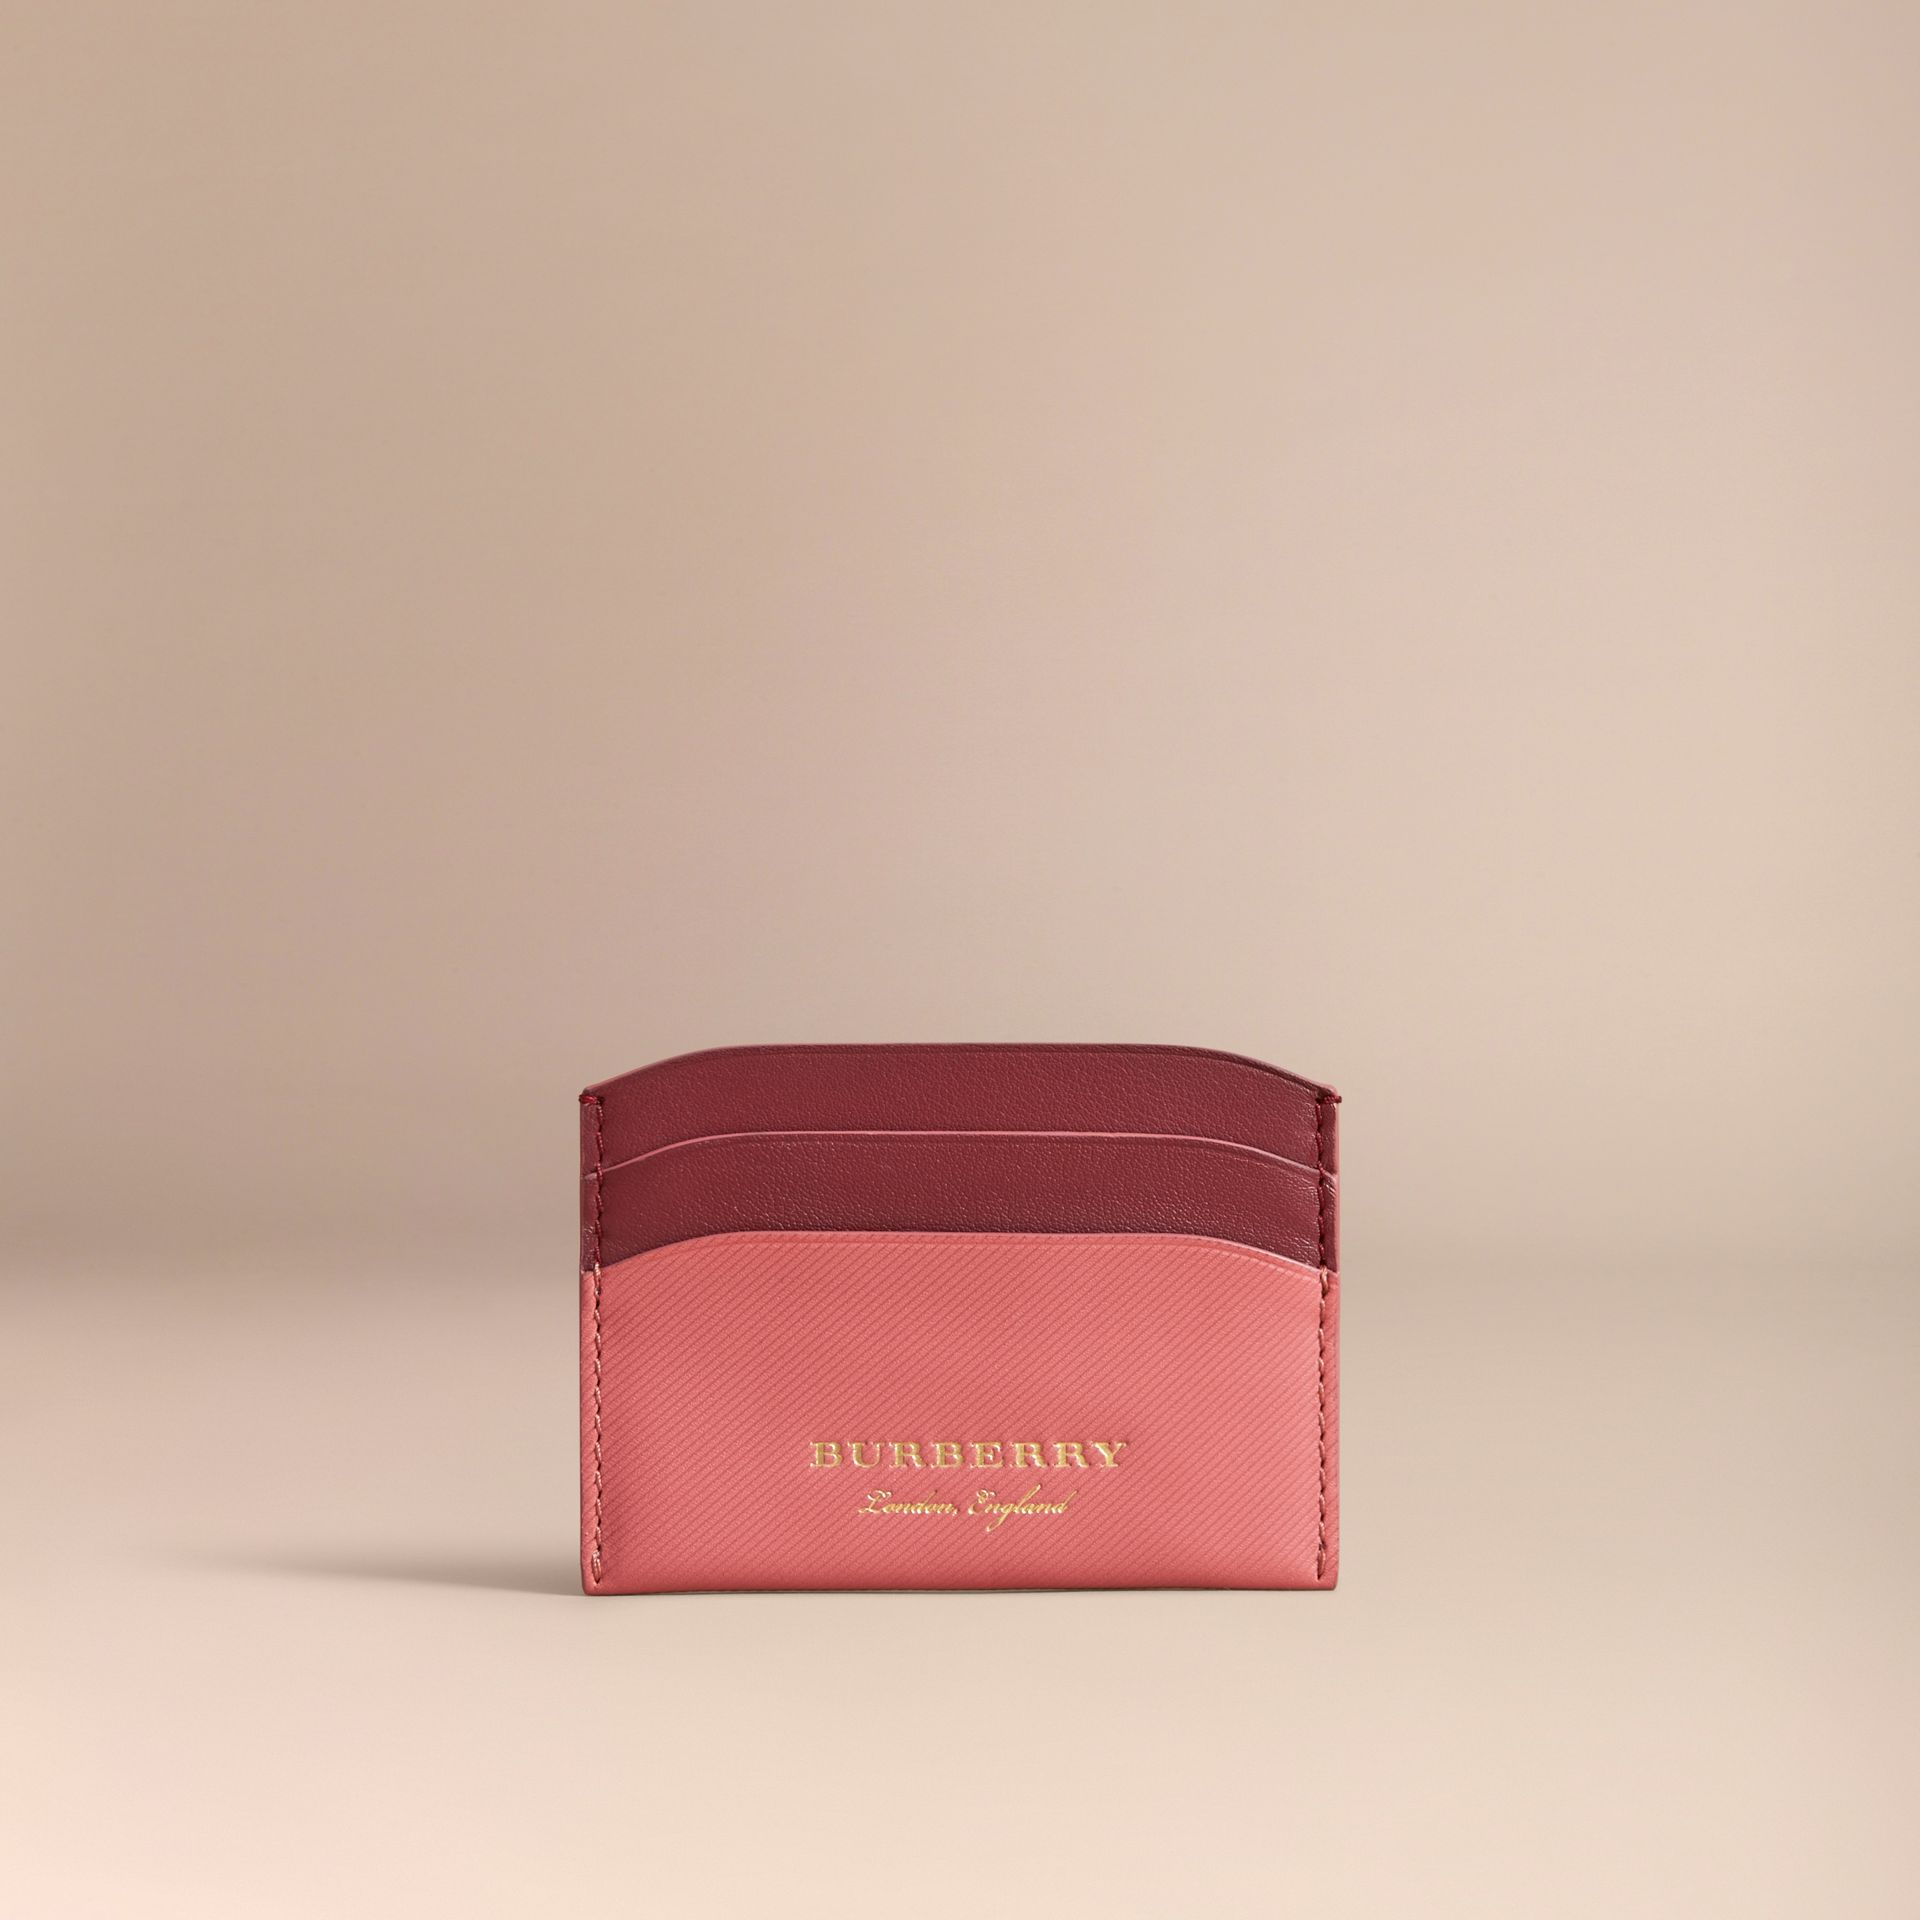 Porte-cartes en cuir trench bicolore (Rose Blossom/rouge Antique) - Femme | Burberry - photo de la galerie 4